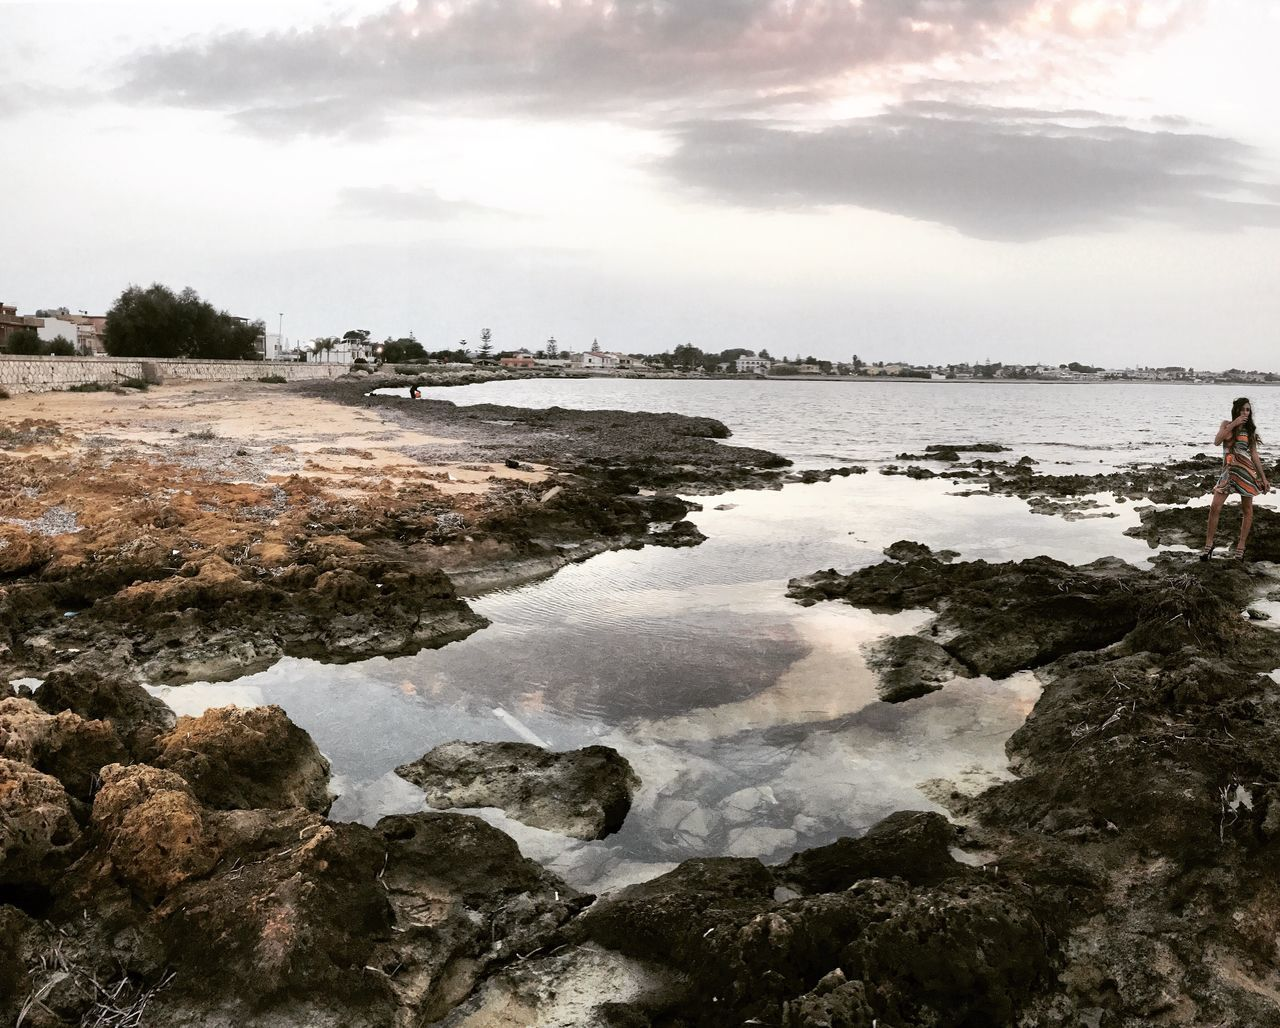 water, sky, cloud - sky, rock - object, nature, outdoors, sea, day, beauty in nature, scenics, real people, one person, people